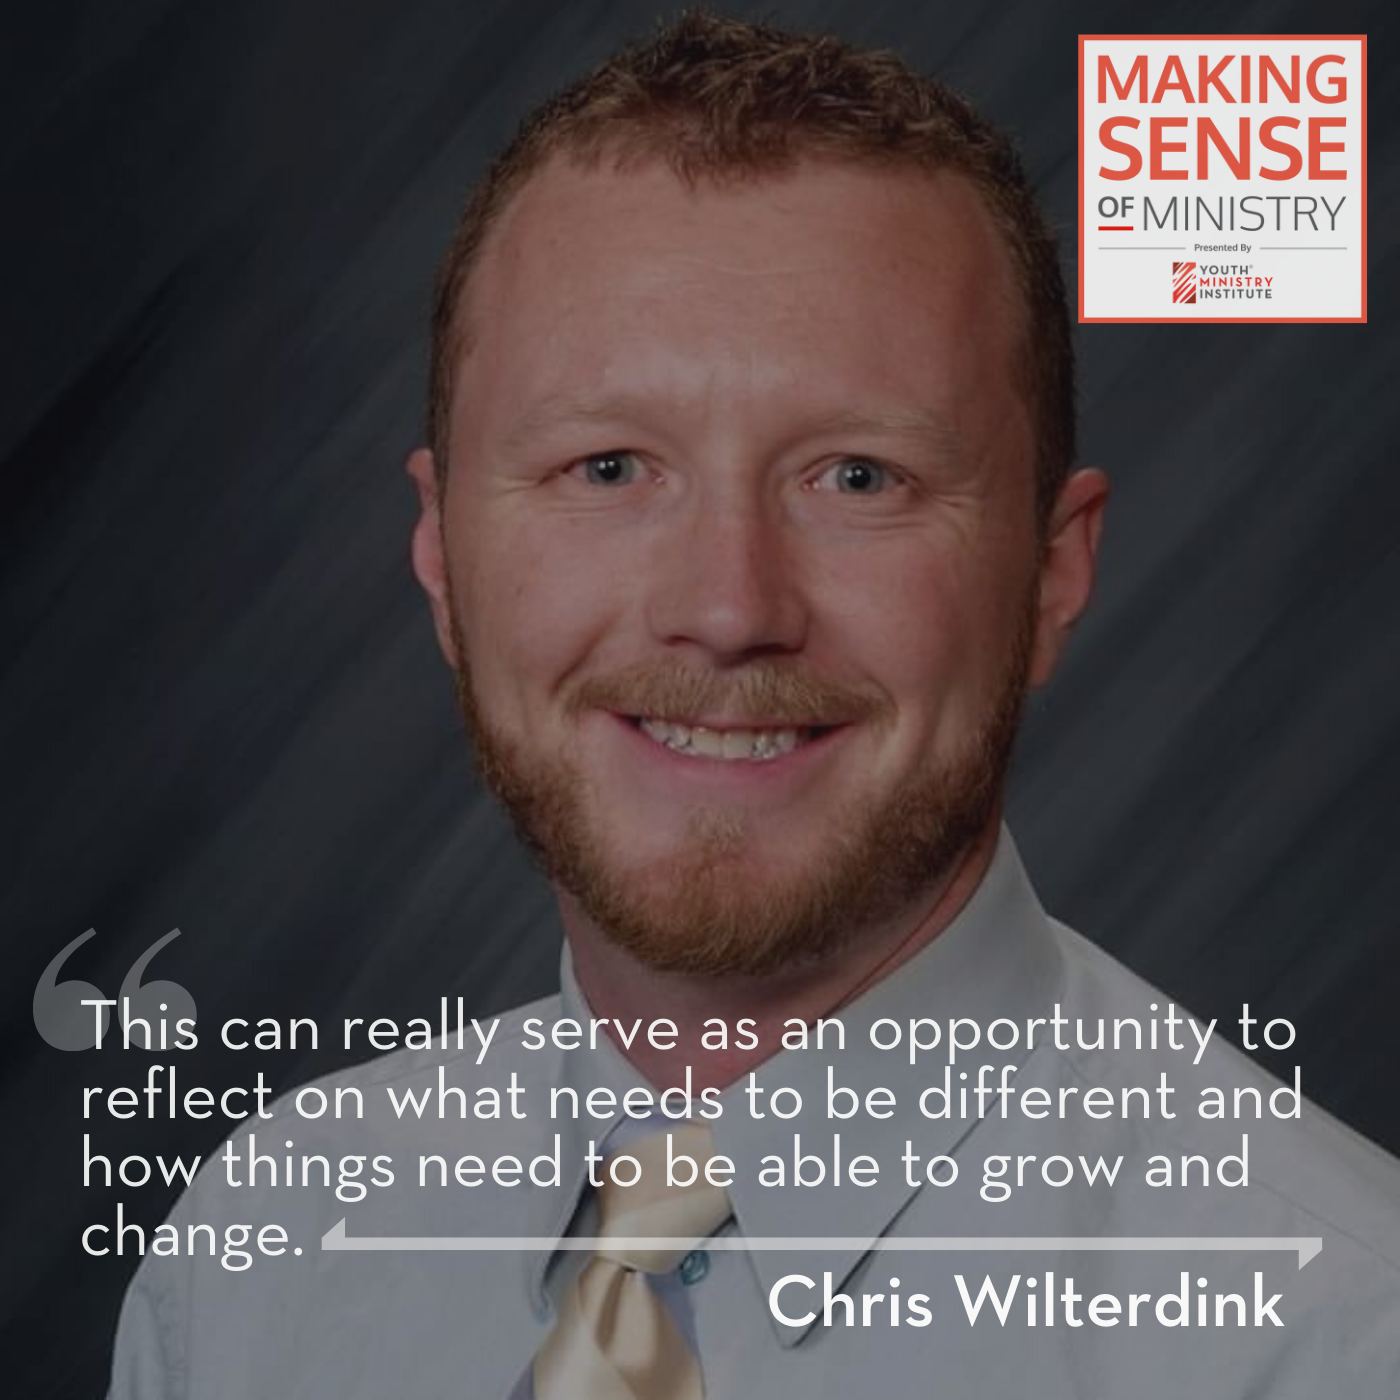 Chris Wilterdink form Young People's Ministries discusses faith formation during Covid19